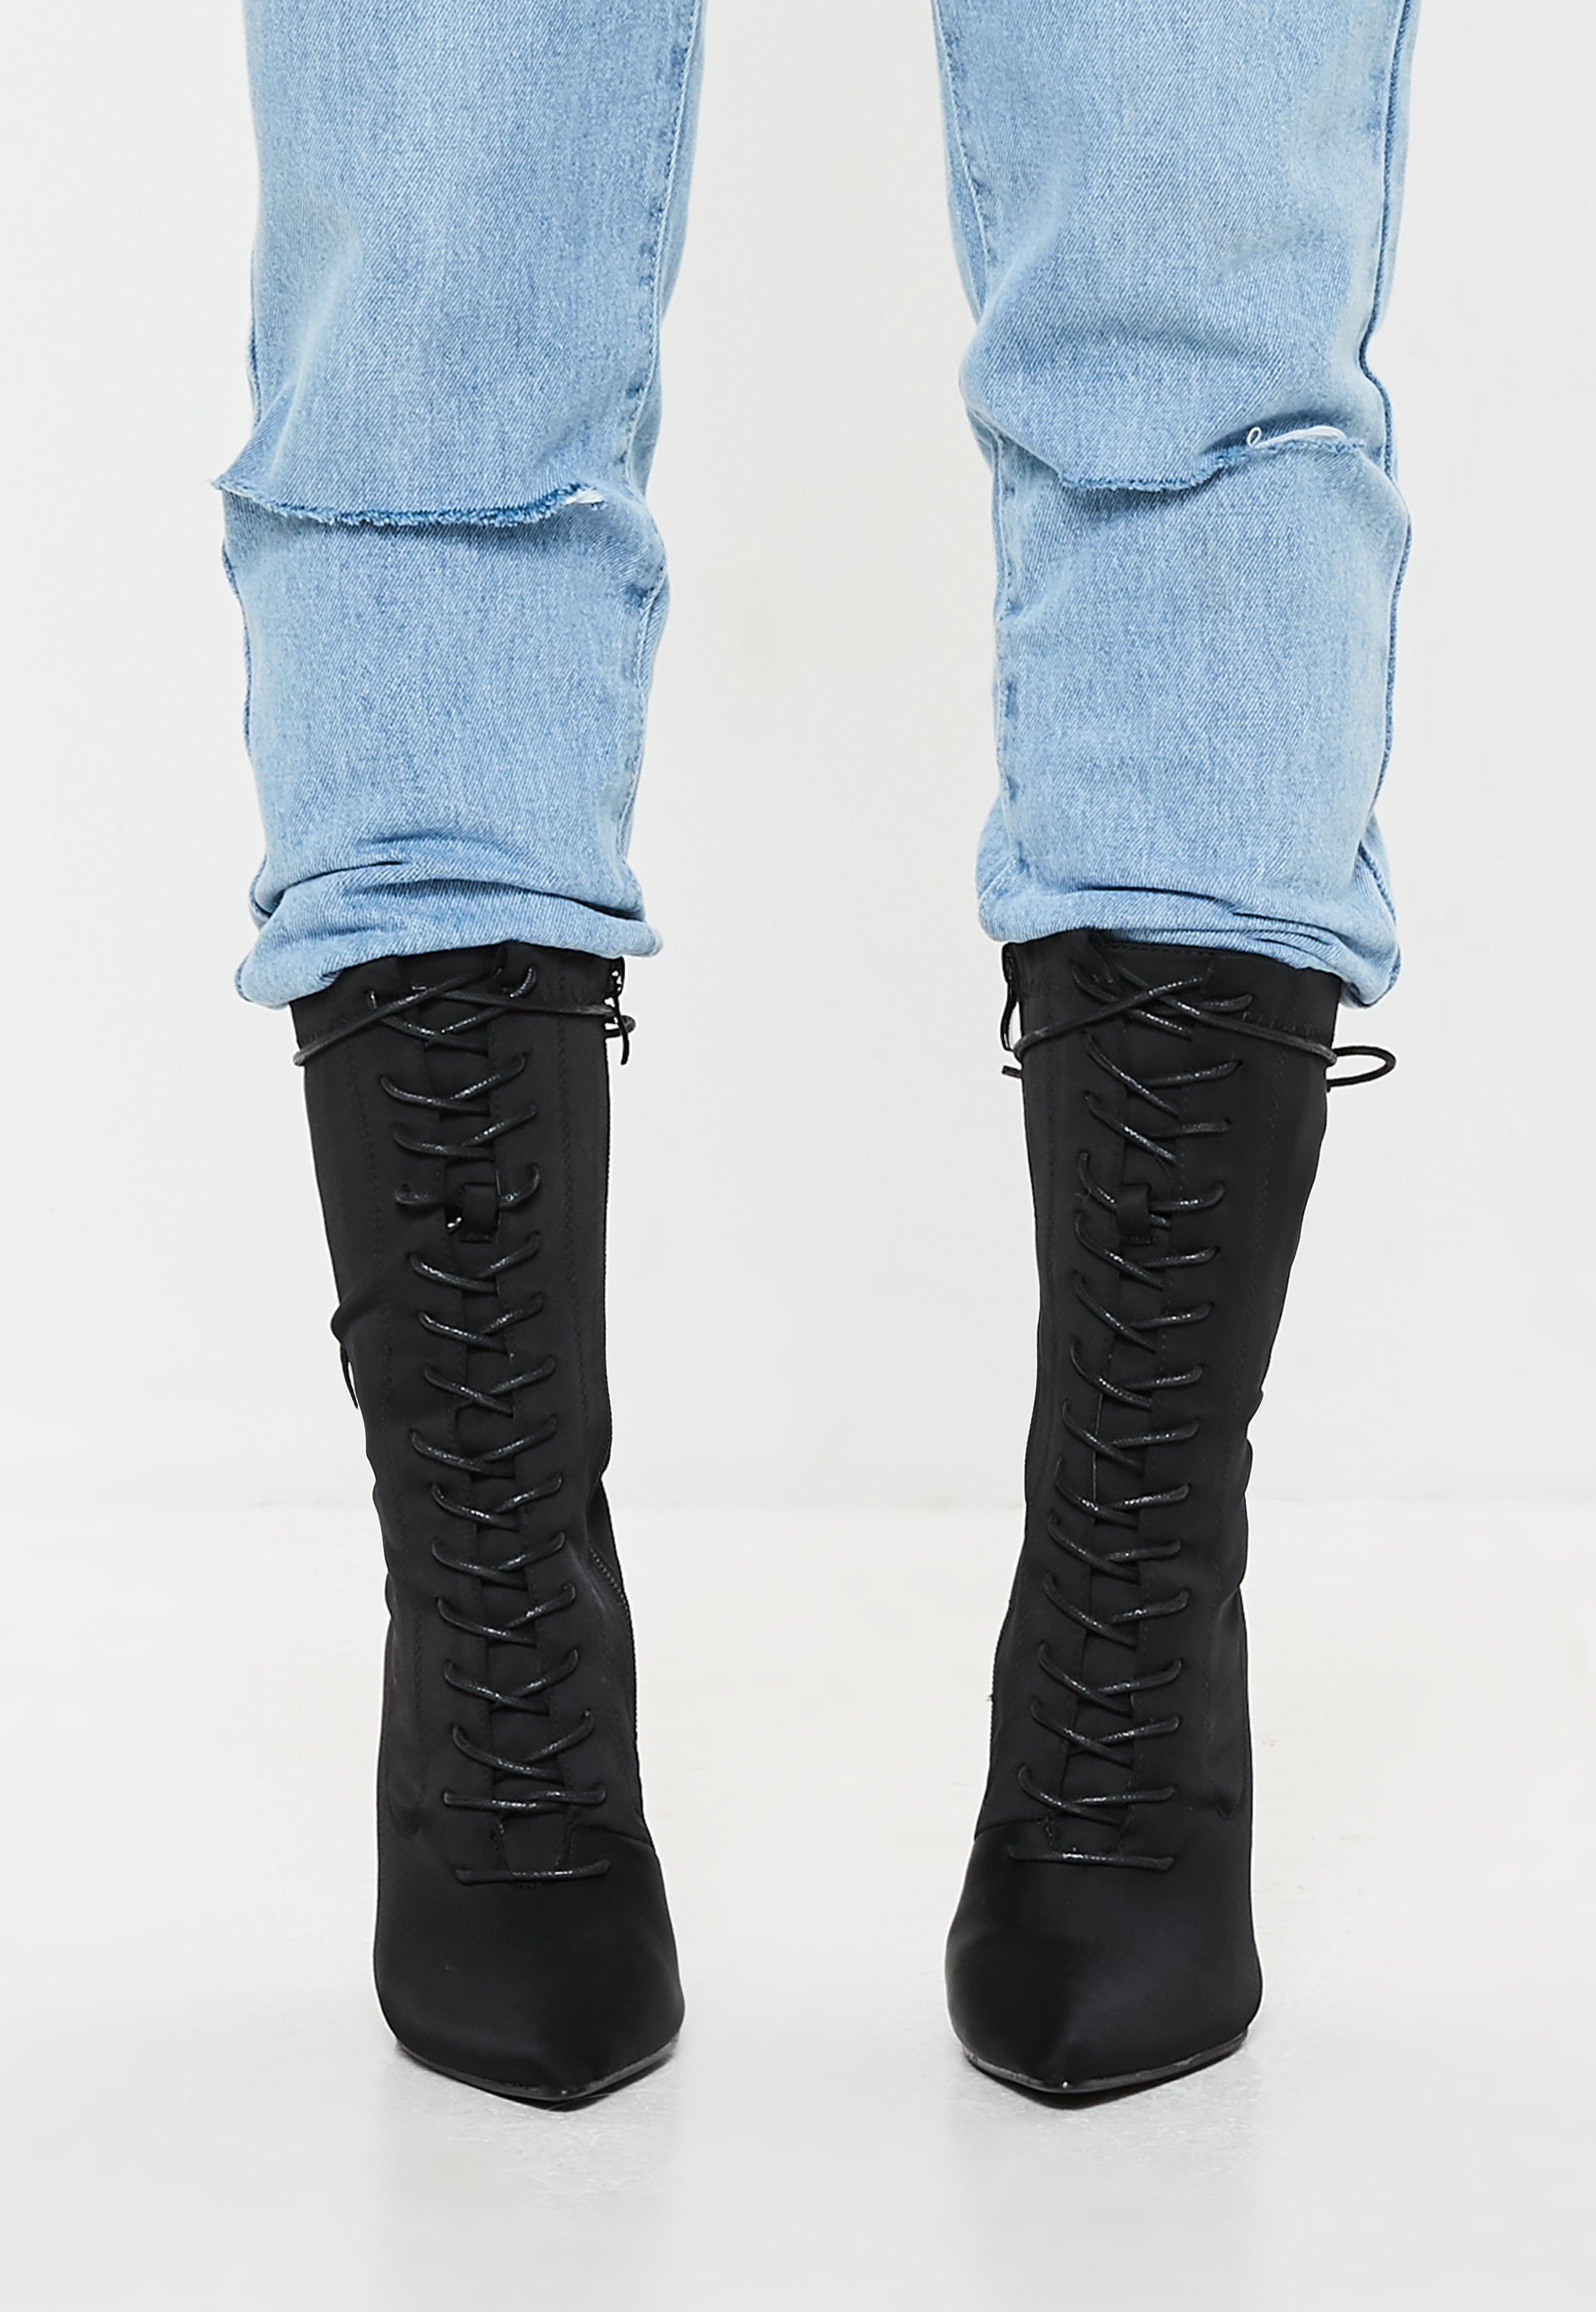 371662100c72 Missguided - Black Lycra Lace Up Stilletto Heel Ankle Boots - Lyst. View  fullscreen